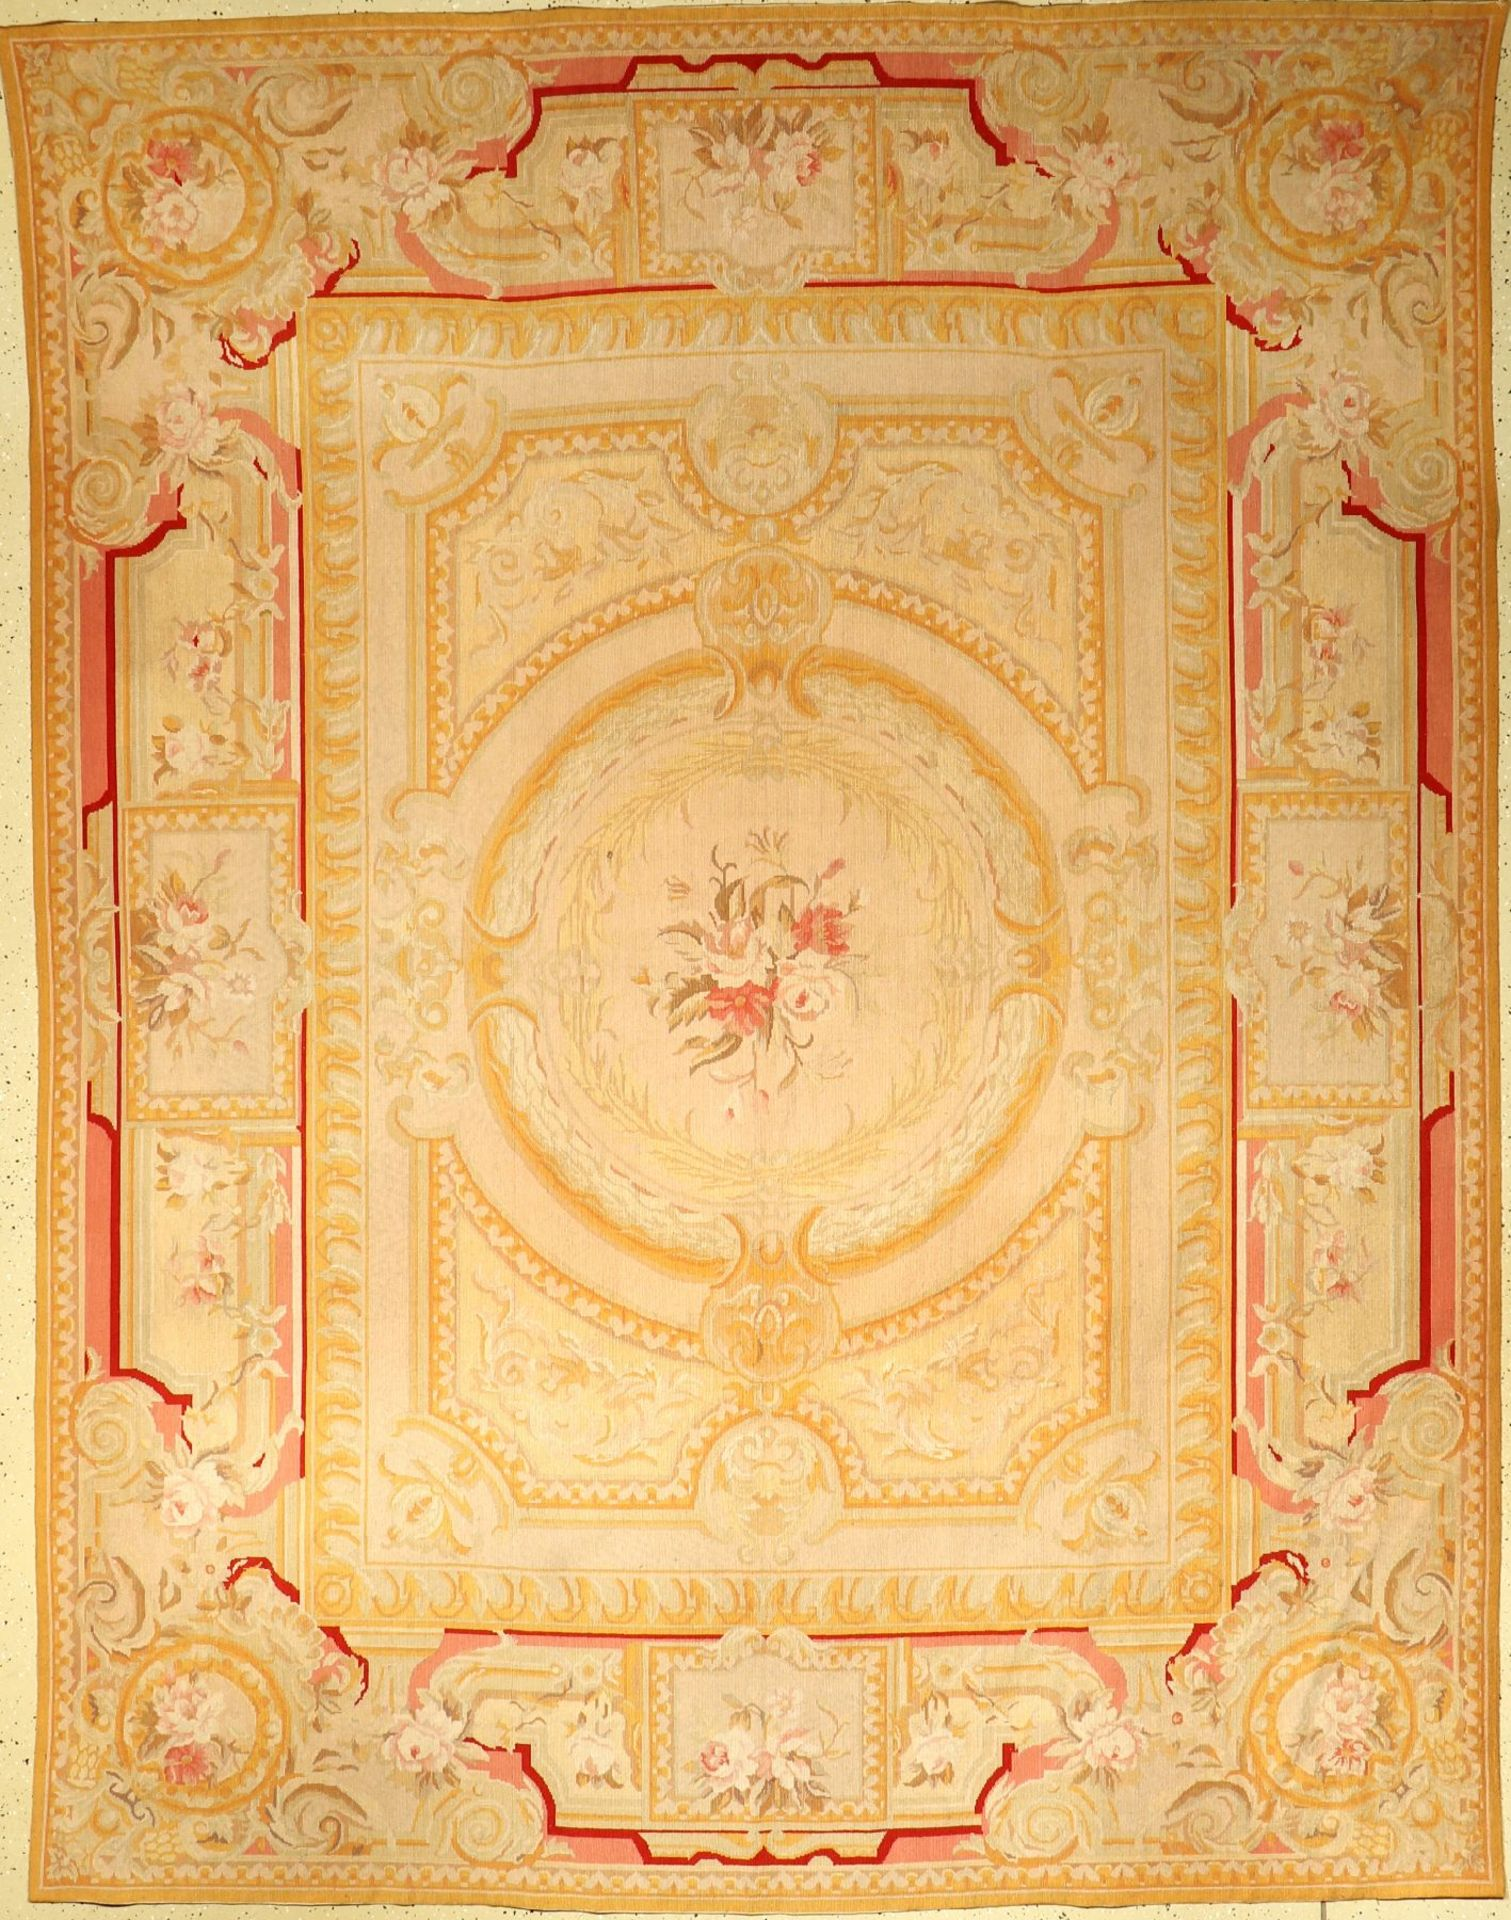 Reves Du Desert Tapis, France, around 1950, wool on cotton, approx. 293 x 225 cm, condition: 2-3,